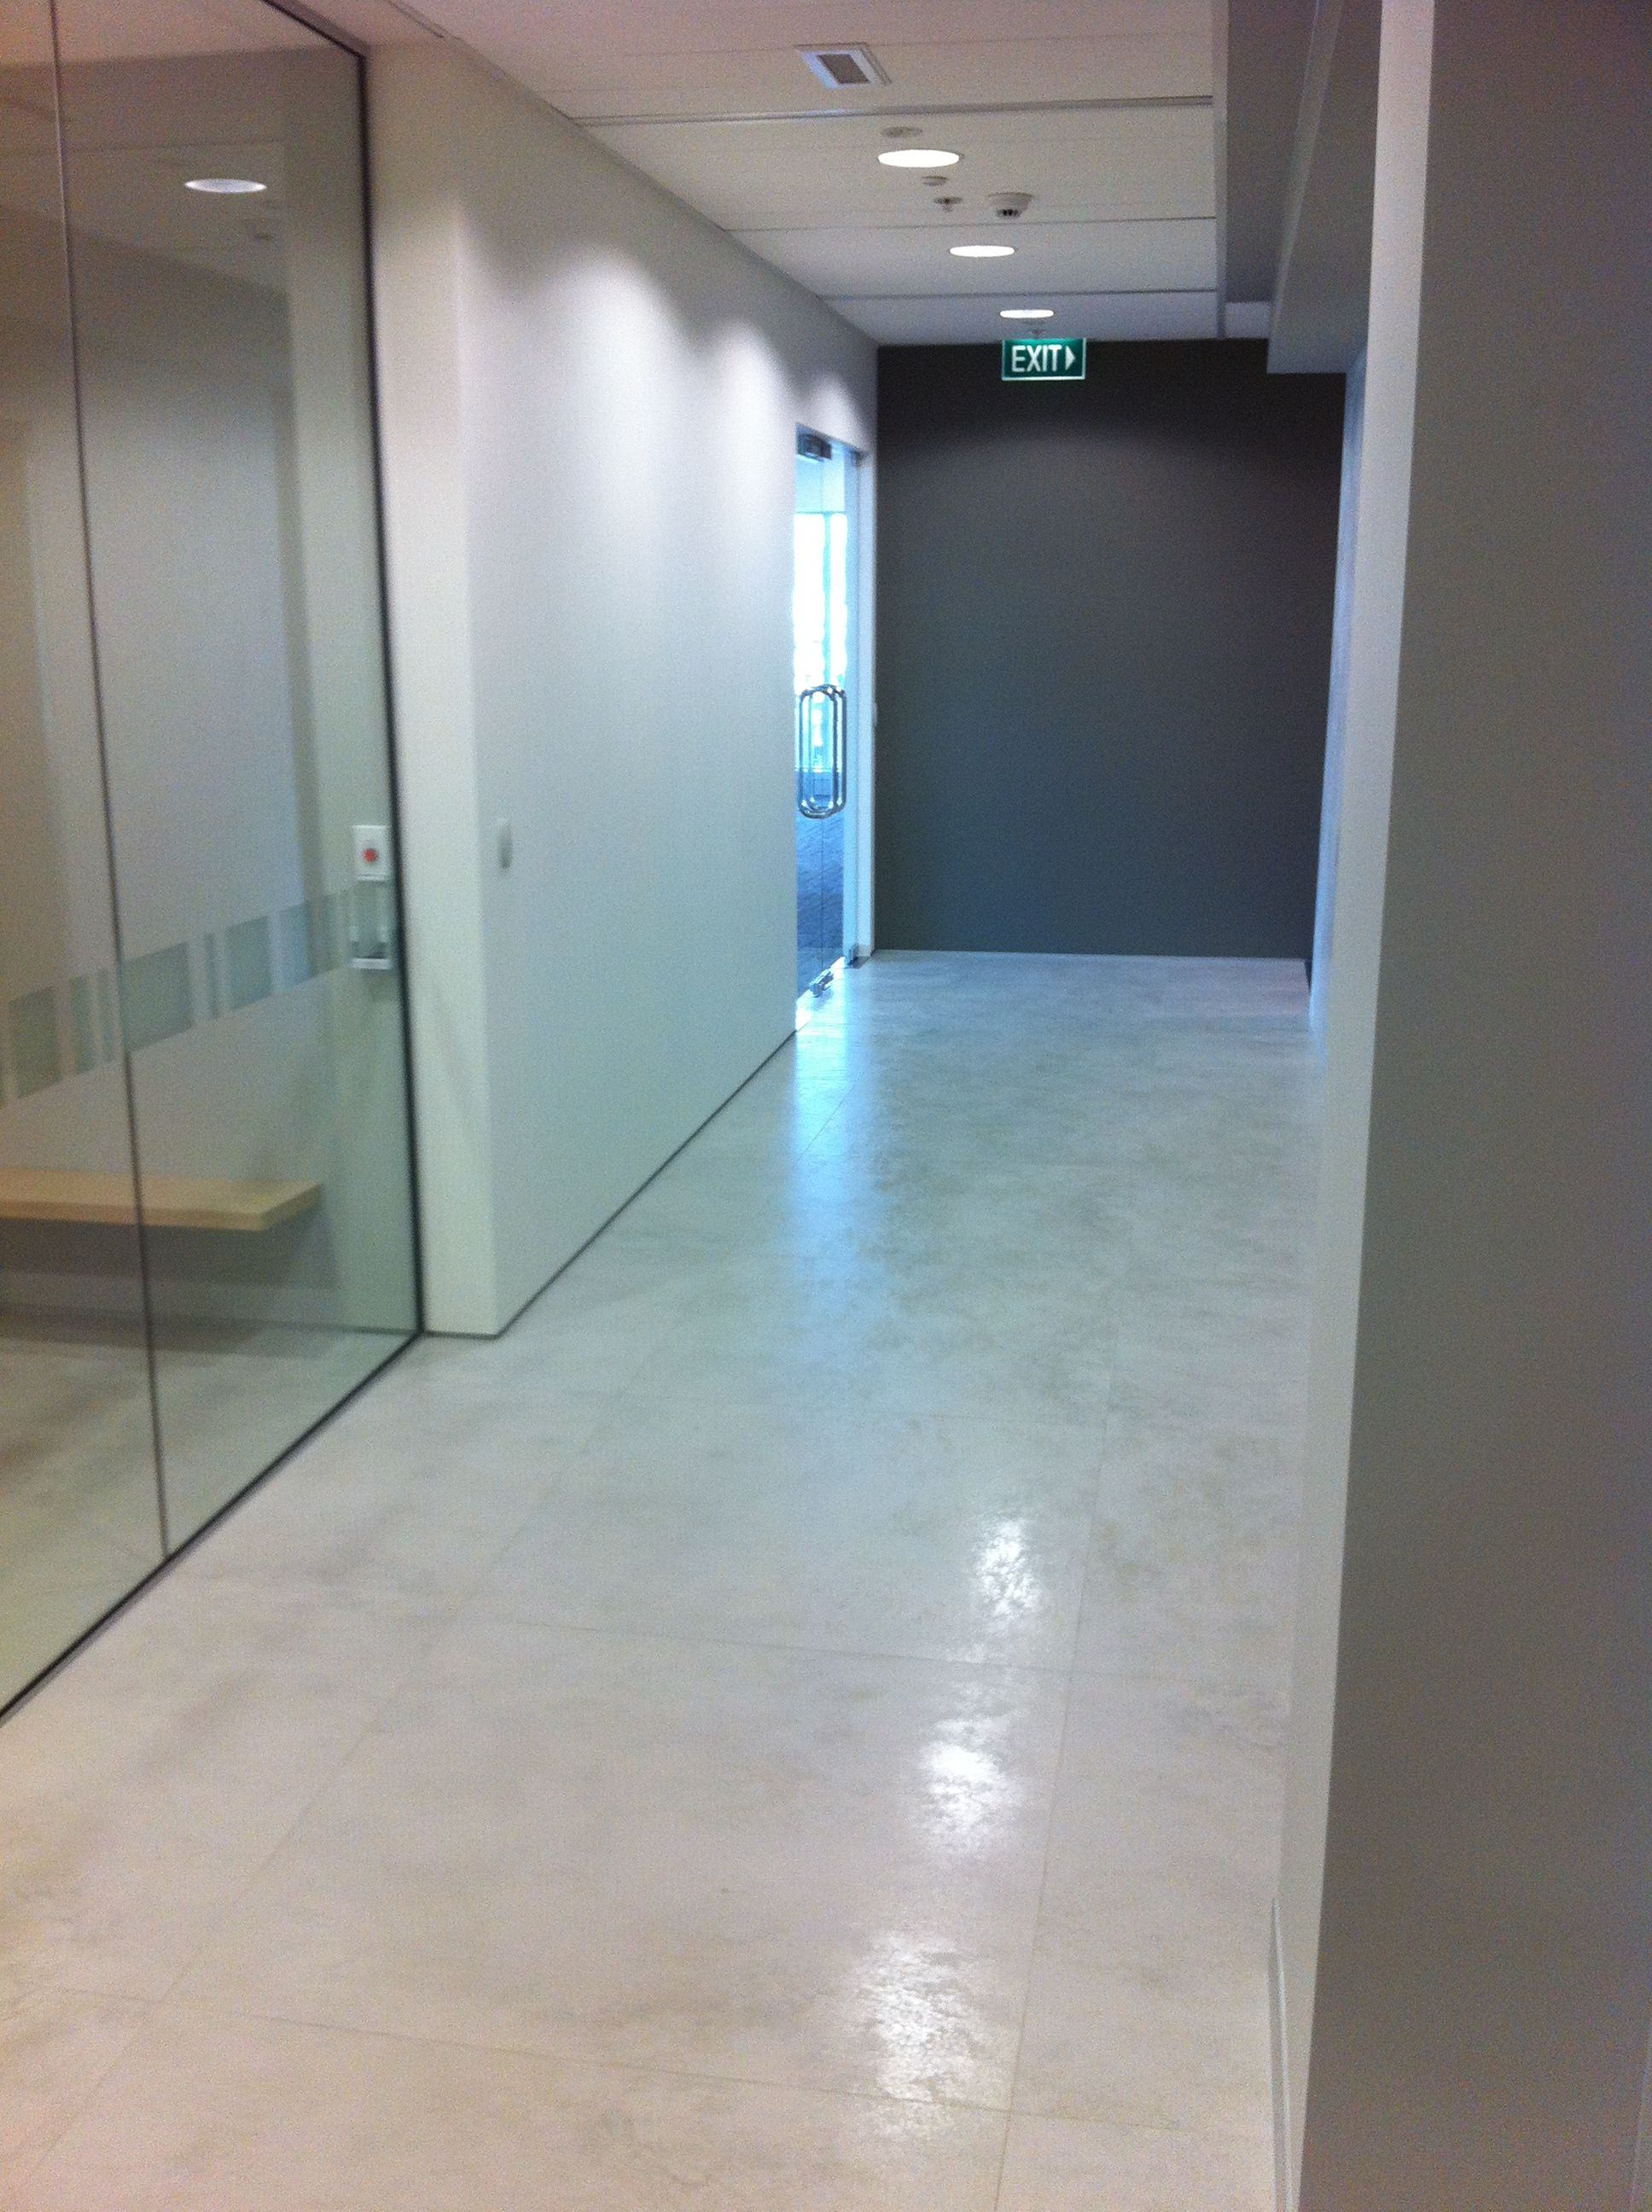 Laminam thin ceramic tiles for floors walls and exteriors laminam thin ceramic tiles for floors walls and exteriors featuring laminam oxide perla dailygadgetfo Image collections